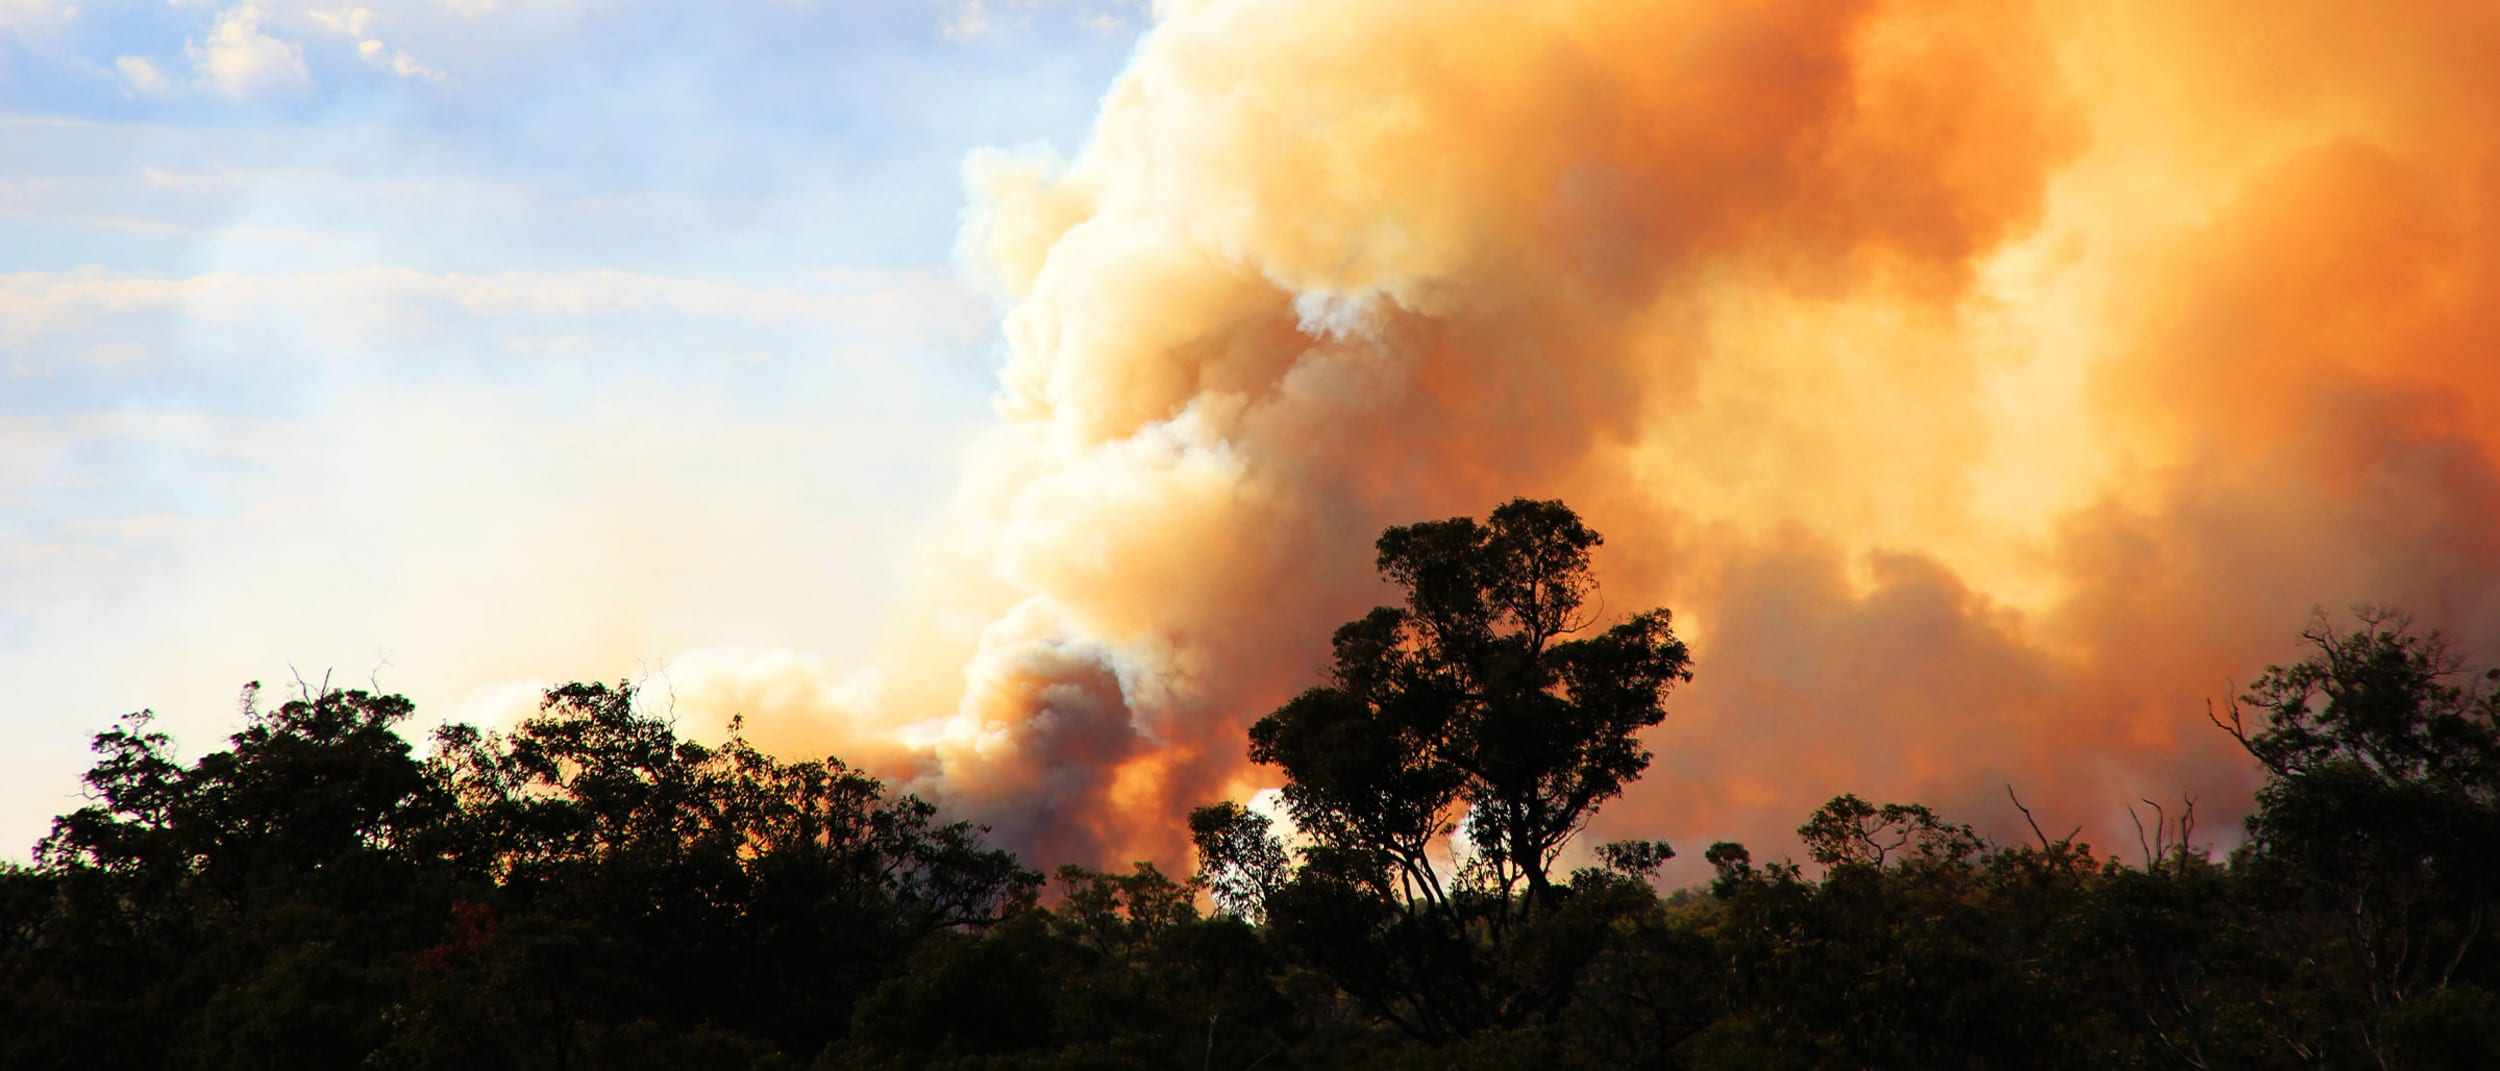 Shop in solidarity: Support the Australian bushfire appeals